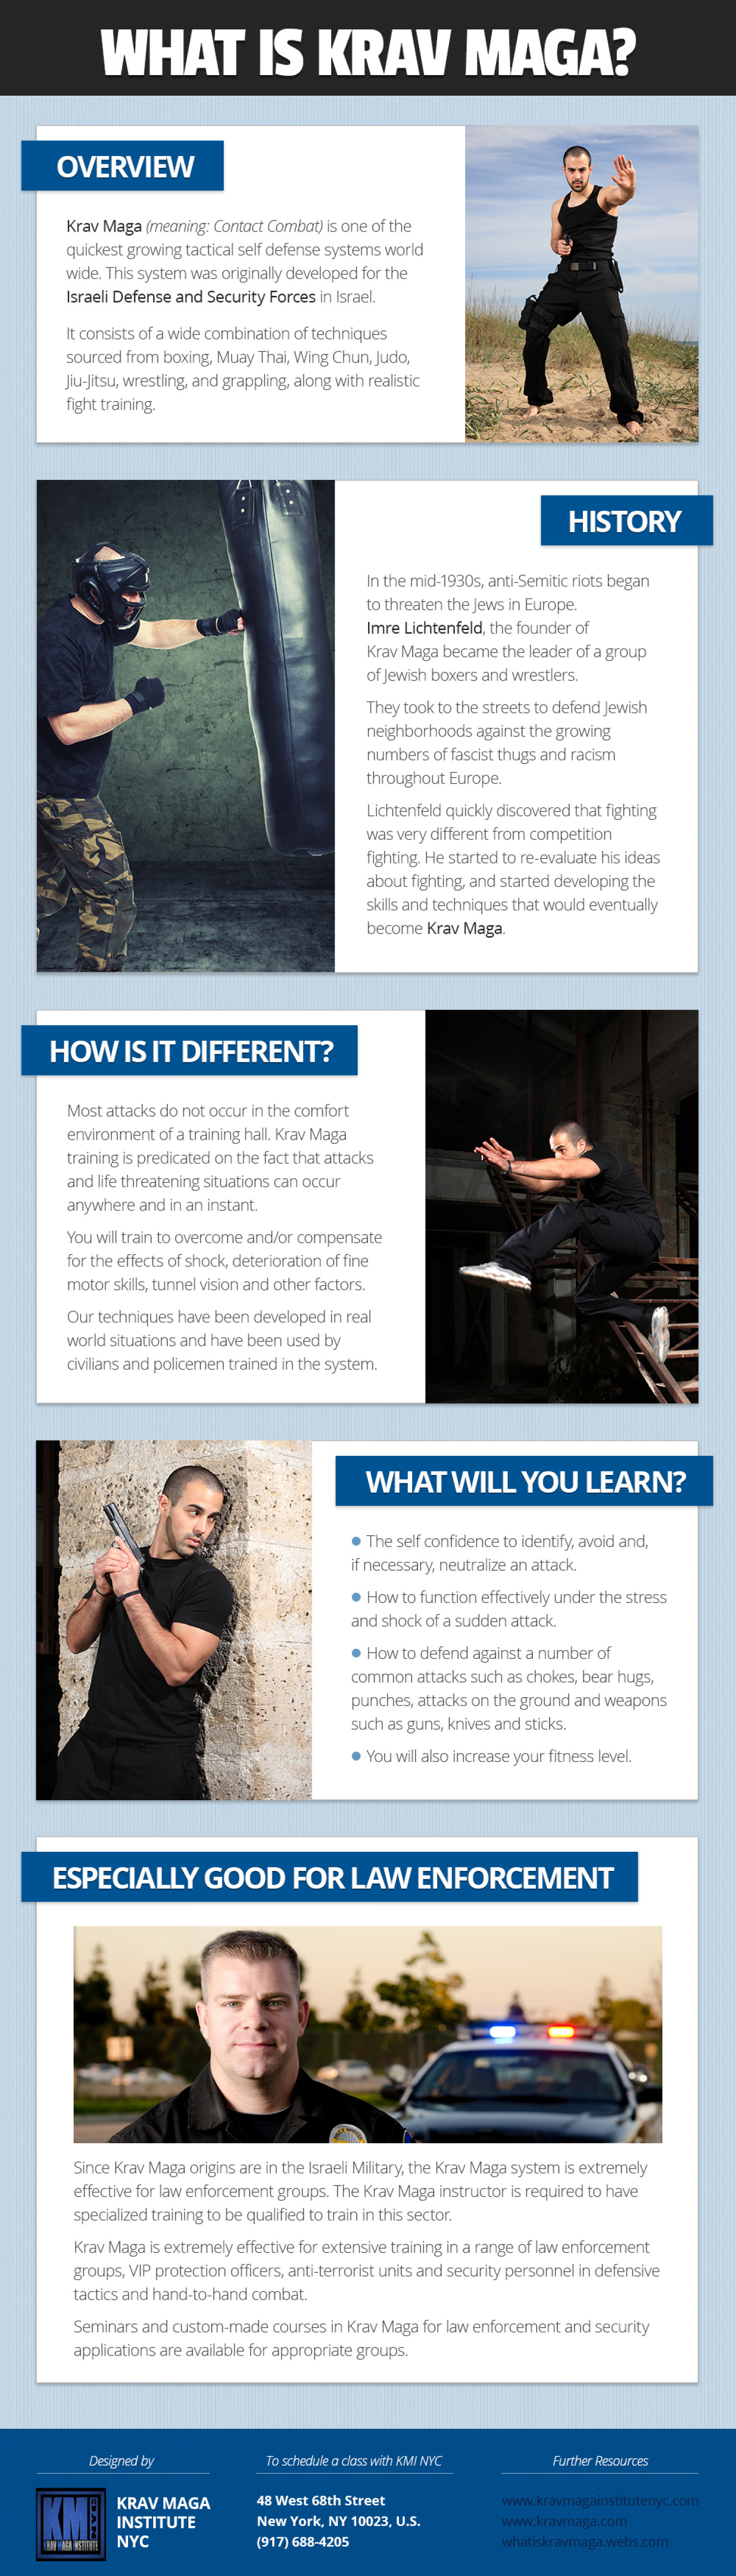 Krav Maga Self Defense System for Law Enforcment Infographic